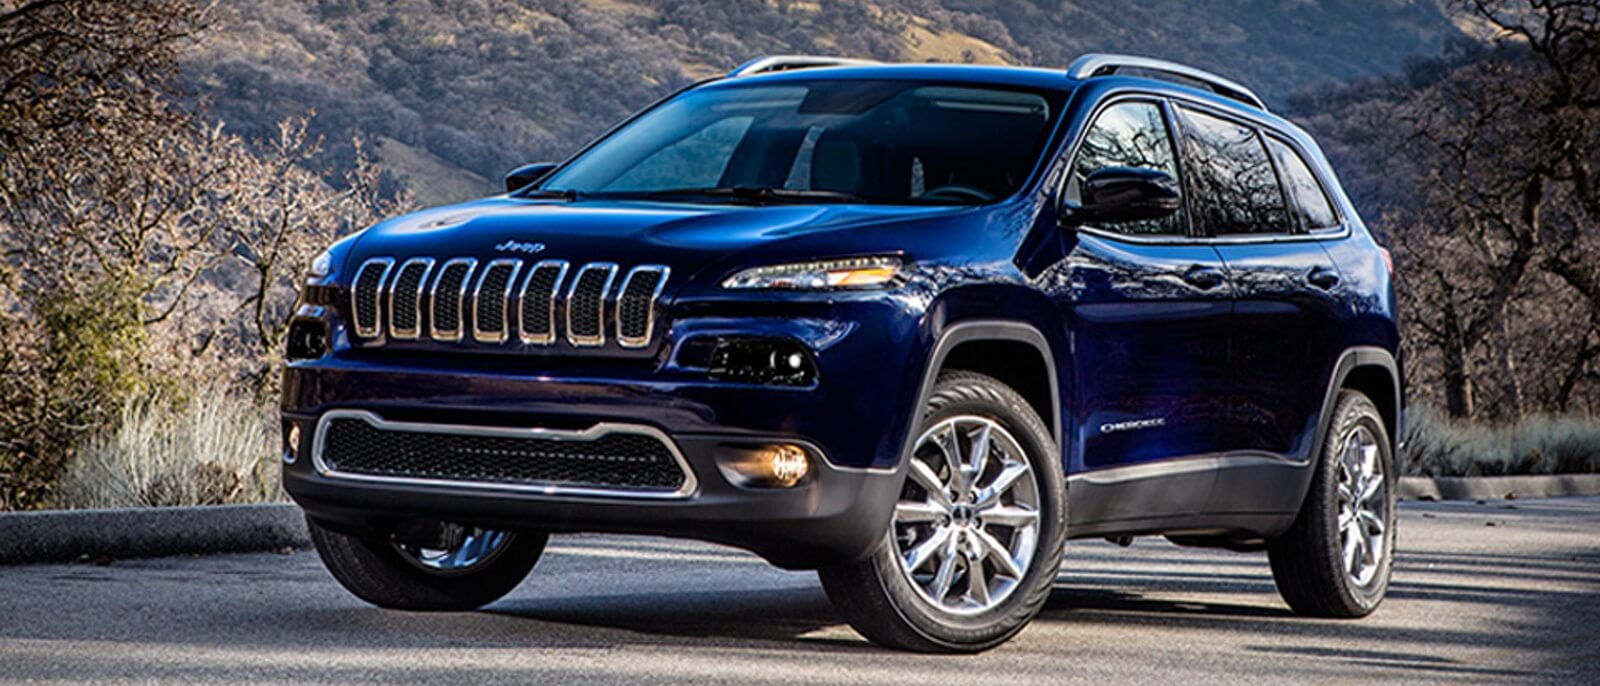 2015 Jeep Cherokee parked